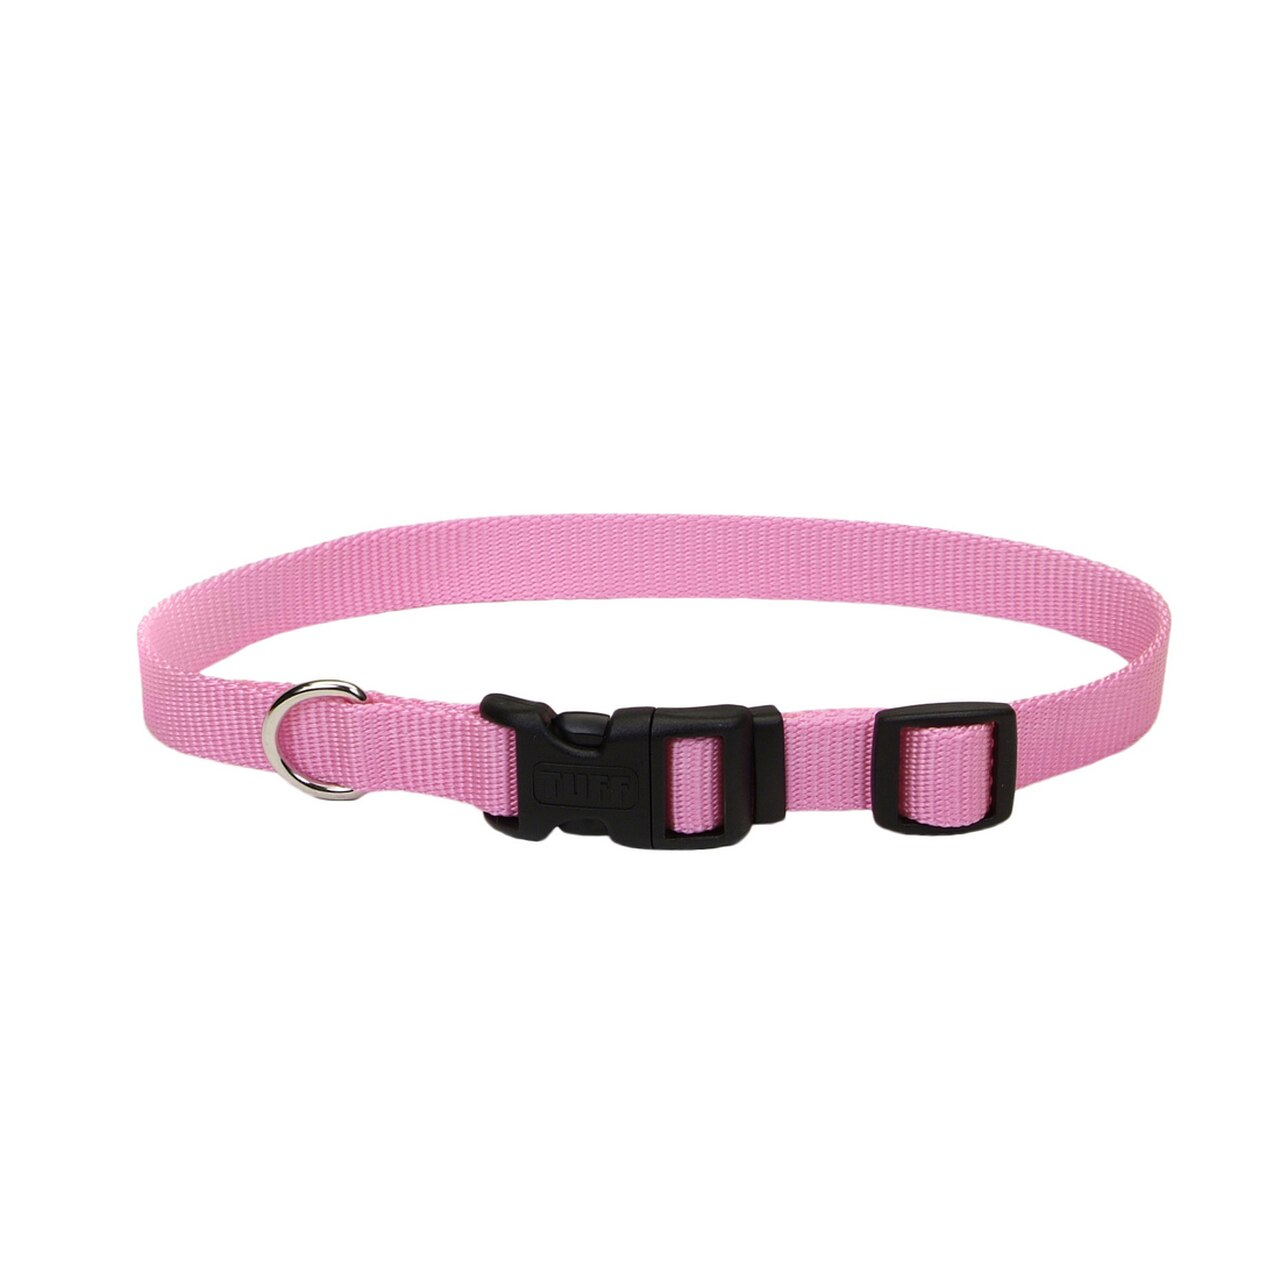 Coastal Adjustable Nylon Collar with Tuff Buckle for Dogs, Pink Bright, 3/4-in x 14-20-in